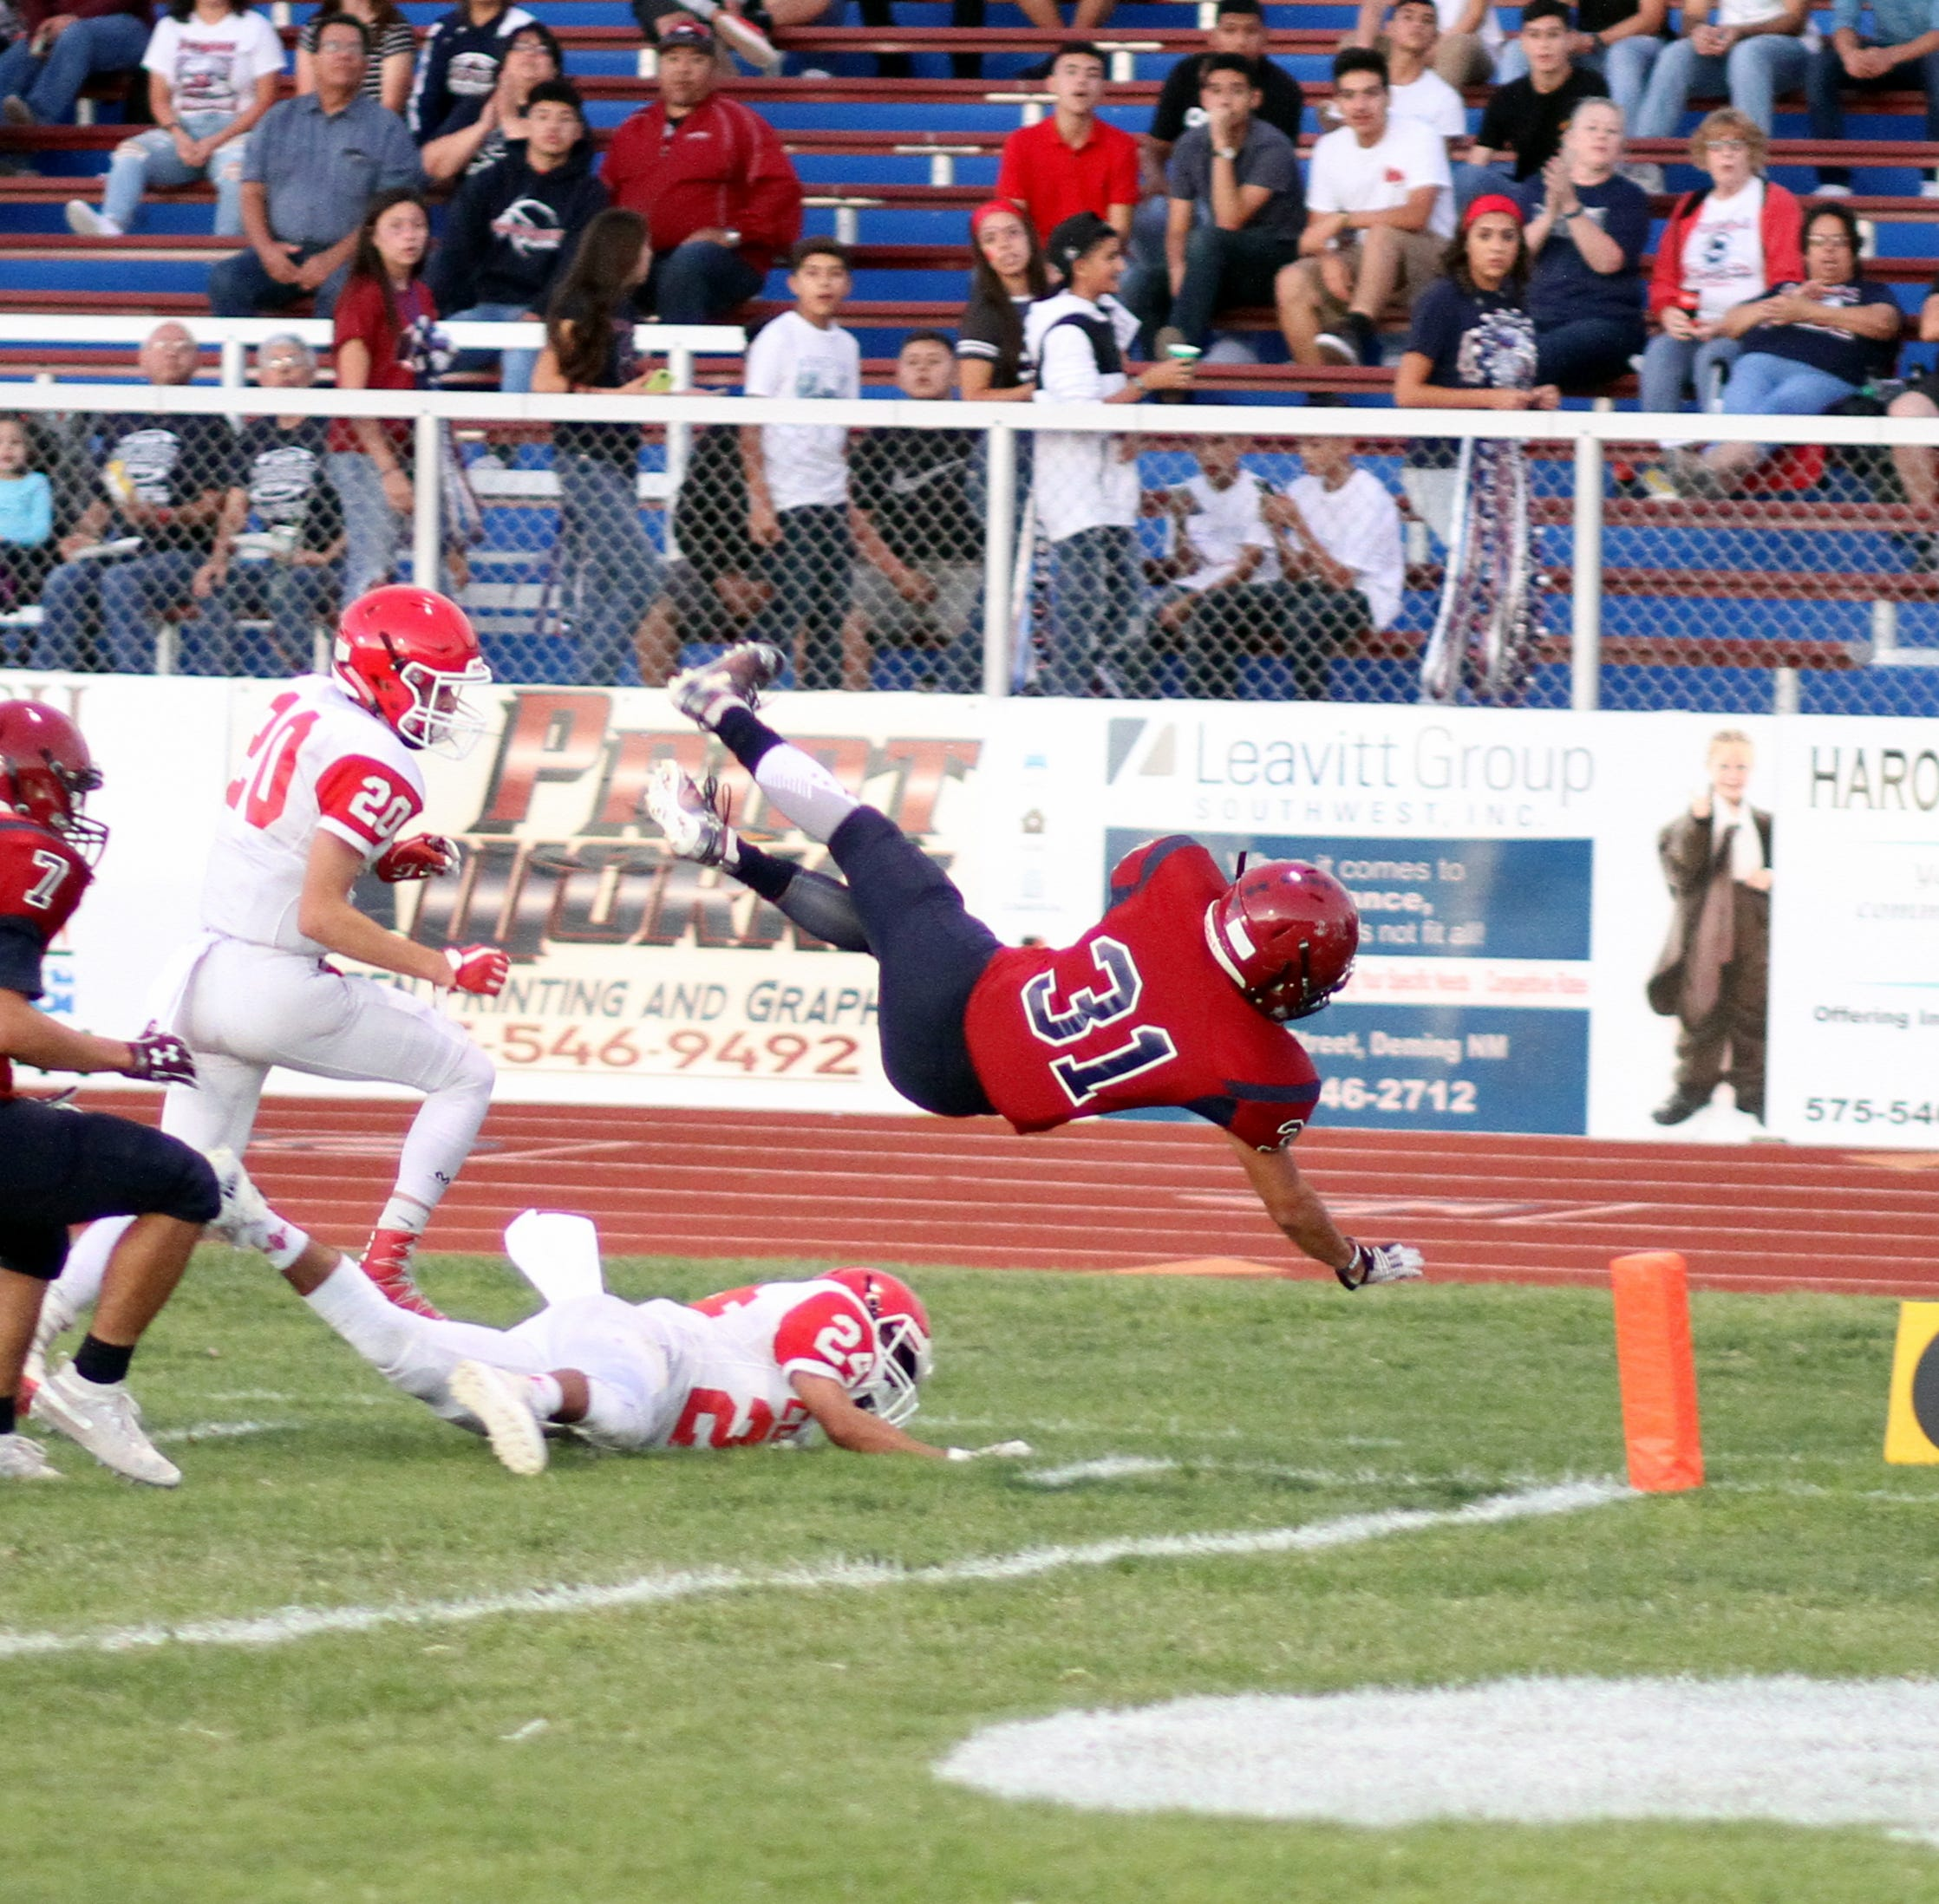 Deming Wildcats clean-up on Cobre, 42-0 on DHS Homecoming Night